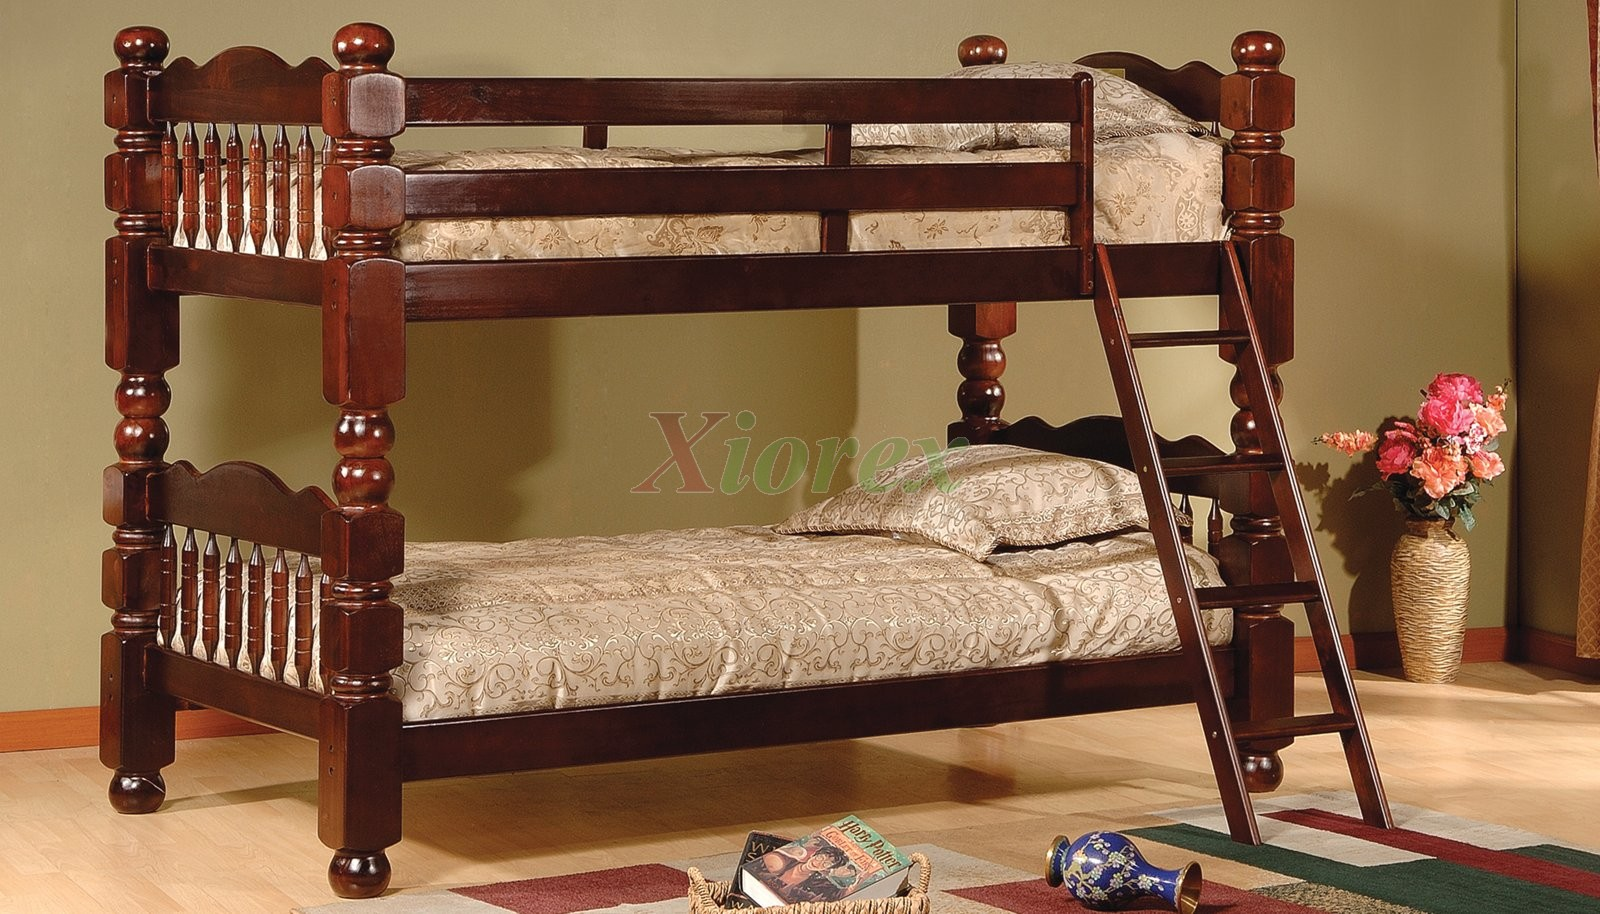 Bunk Beds for Kids with Short Posts Acubens in Burnished Cherry.